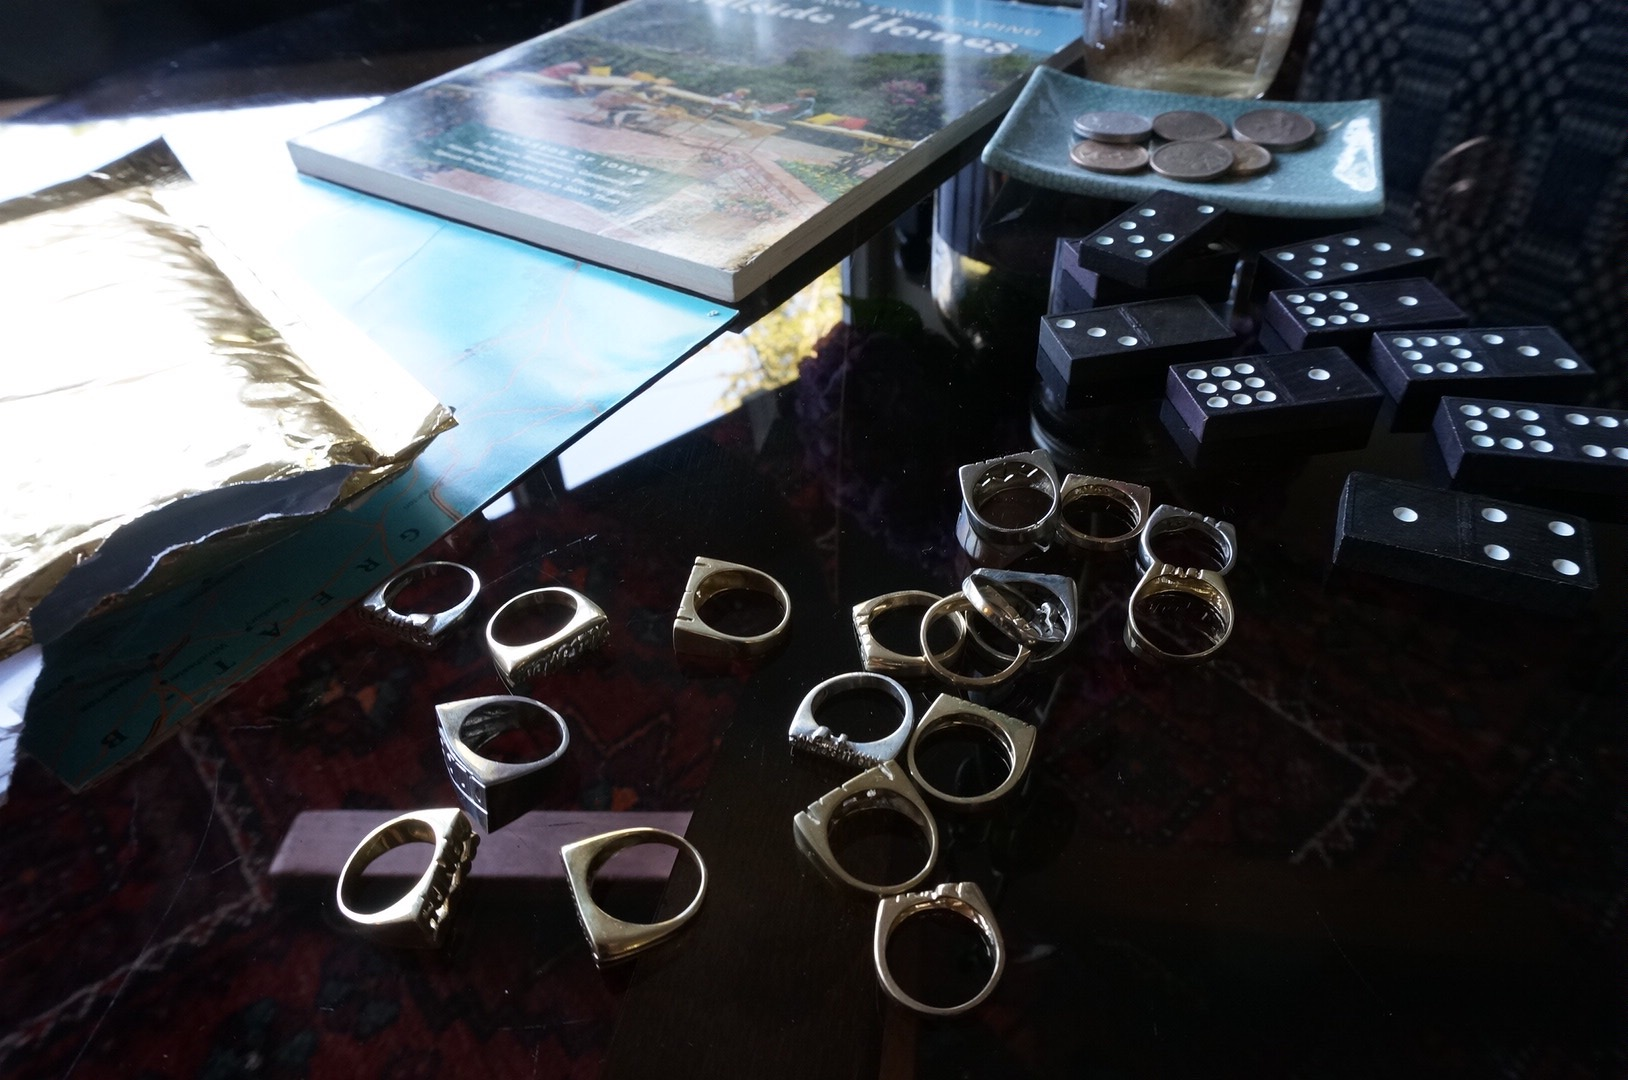 Brass Rings on 1970s Smoked-Glass Table